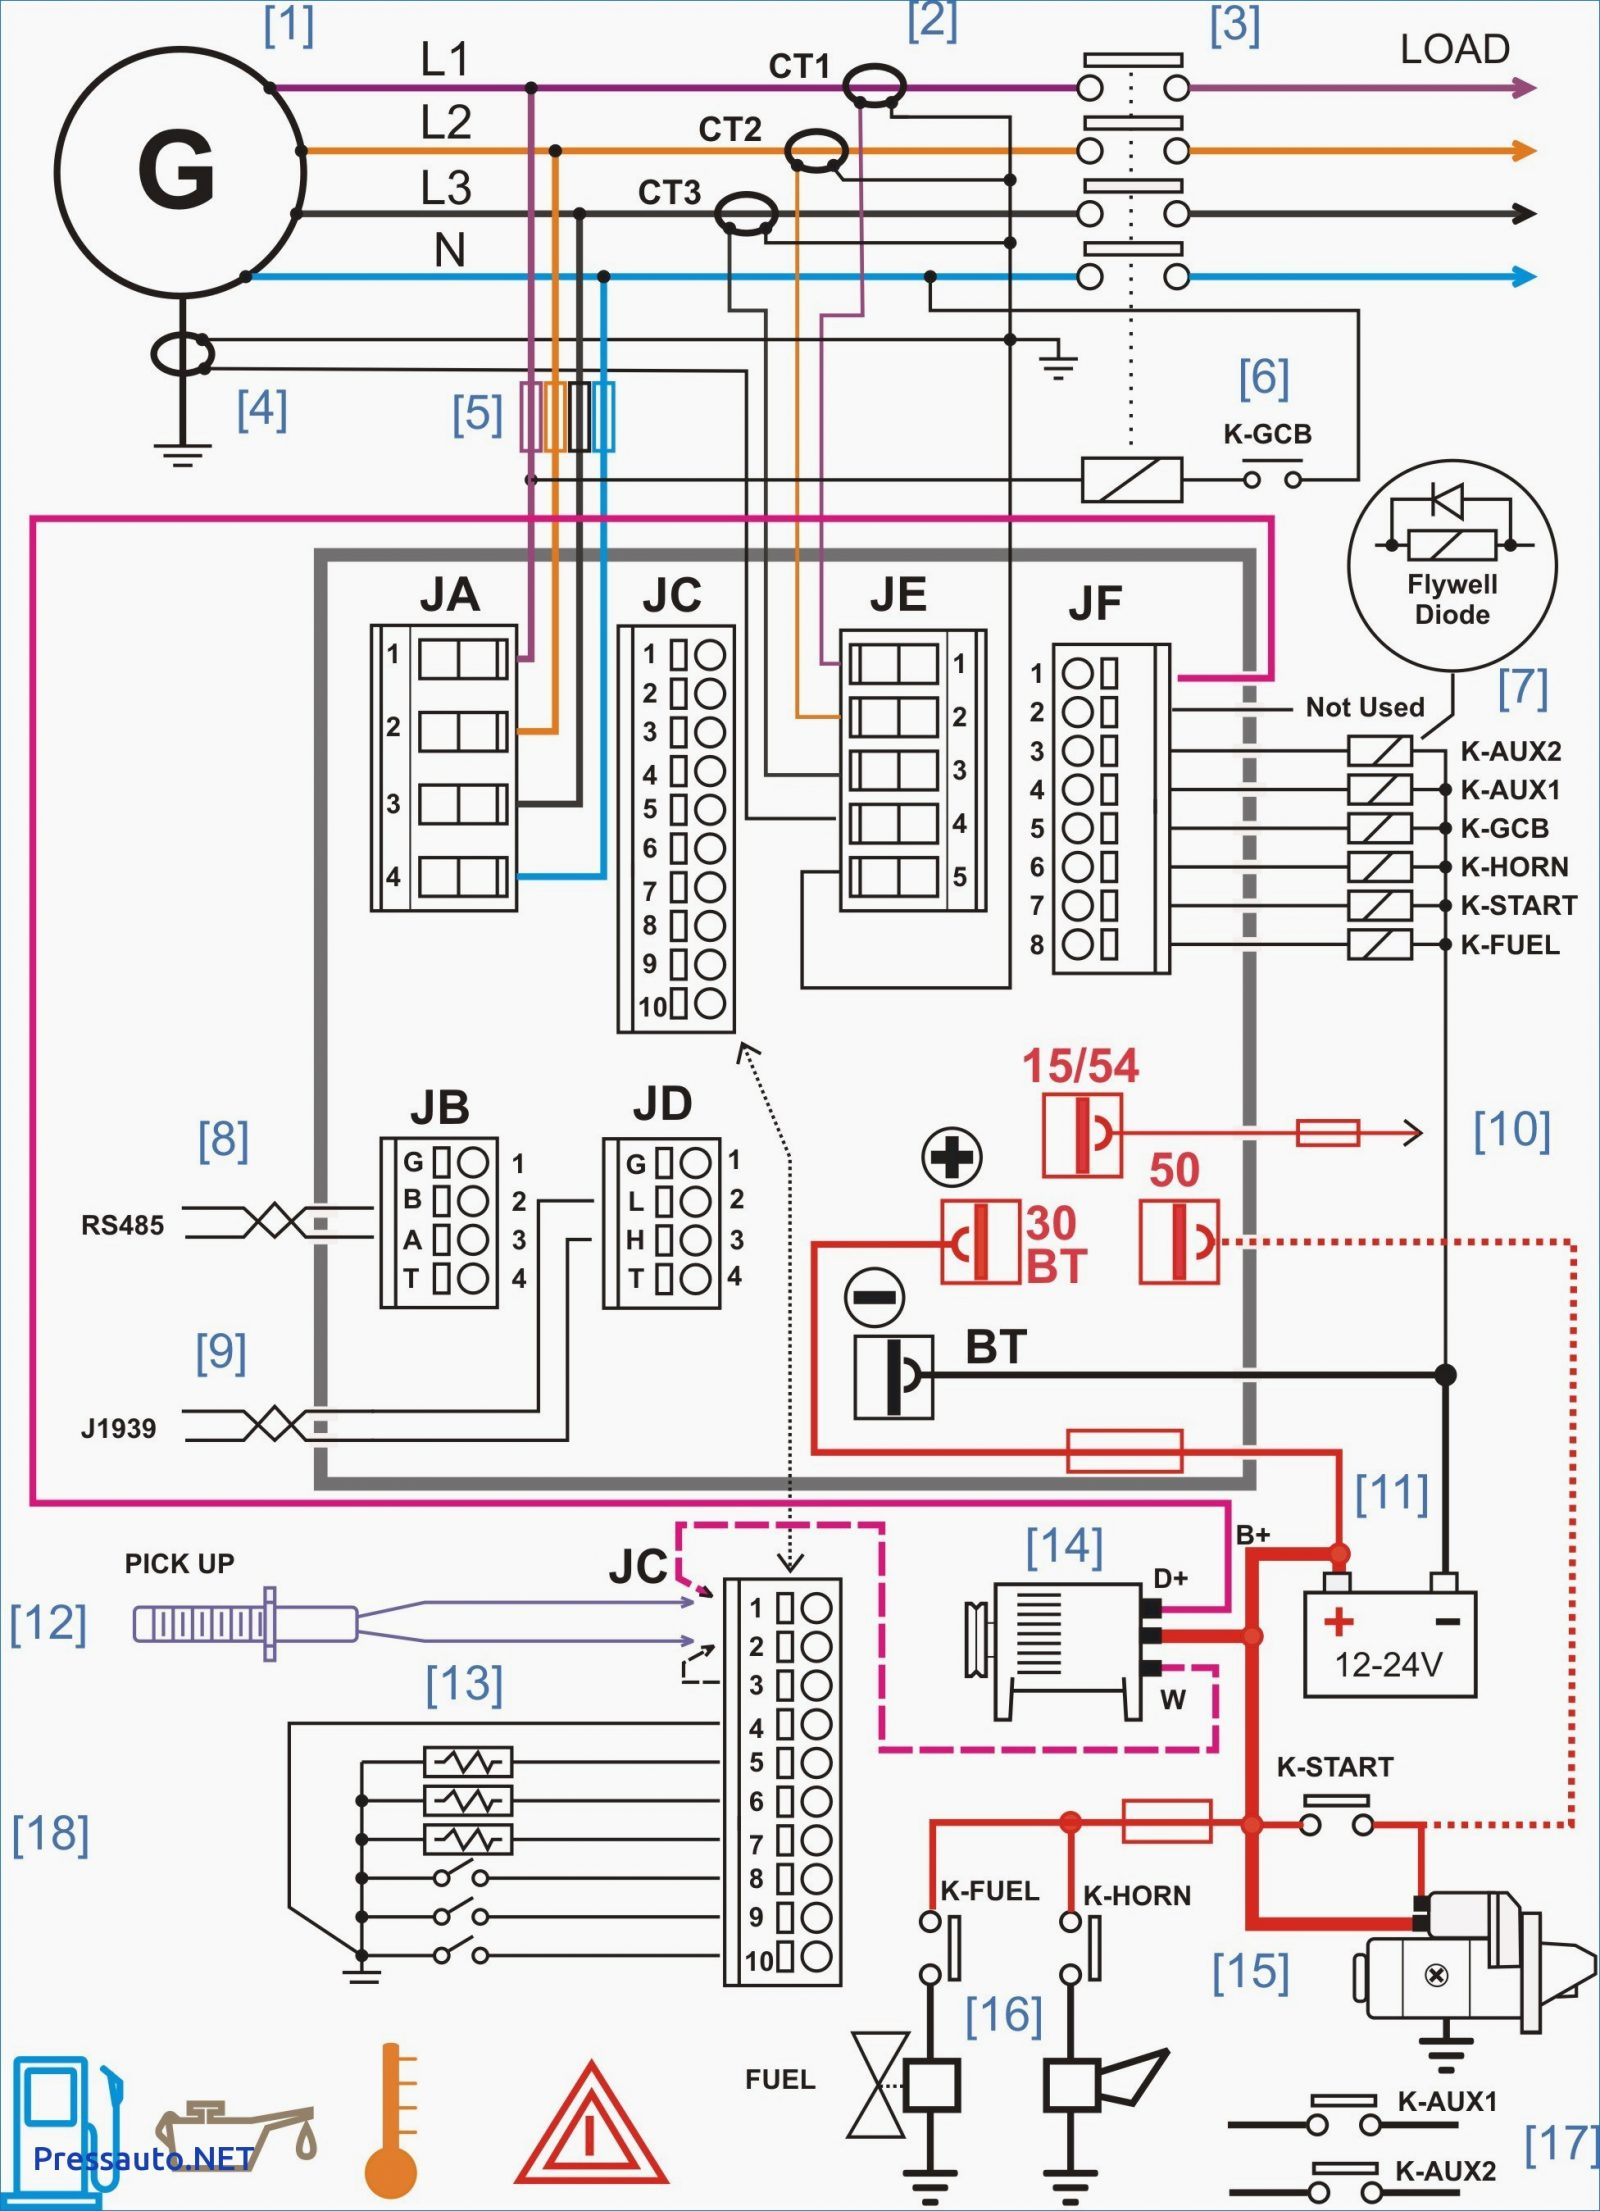 asco 7000 series automatic transfer switch wiring diagram Collection-Asco 7000 Series Automatic Transfer Switch Wiring Diagram New Diagramuto Transfer Switchts Workingnd Control Panel Wiring 20-a